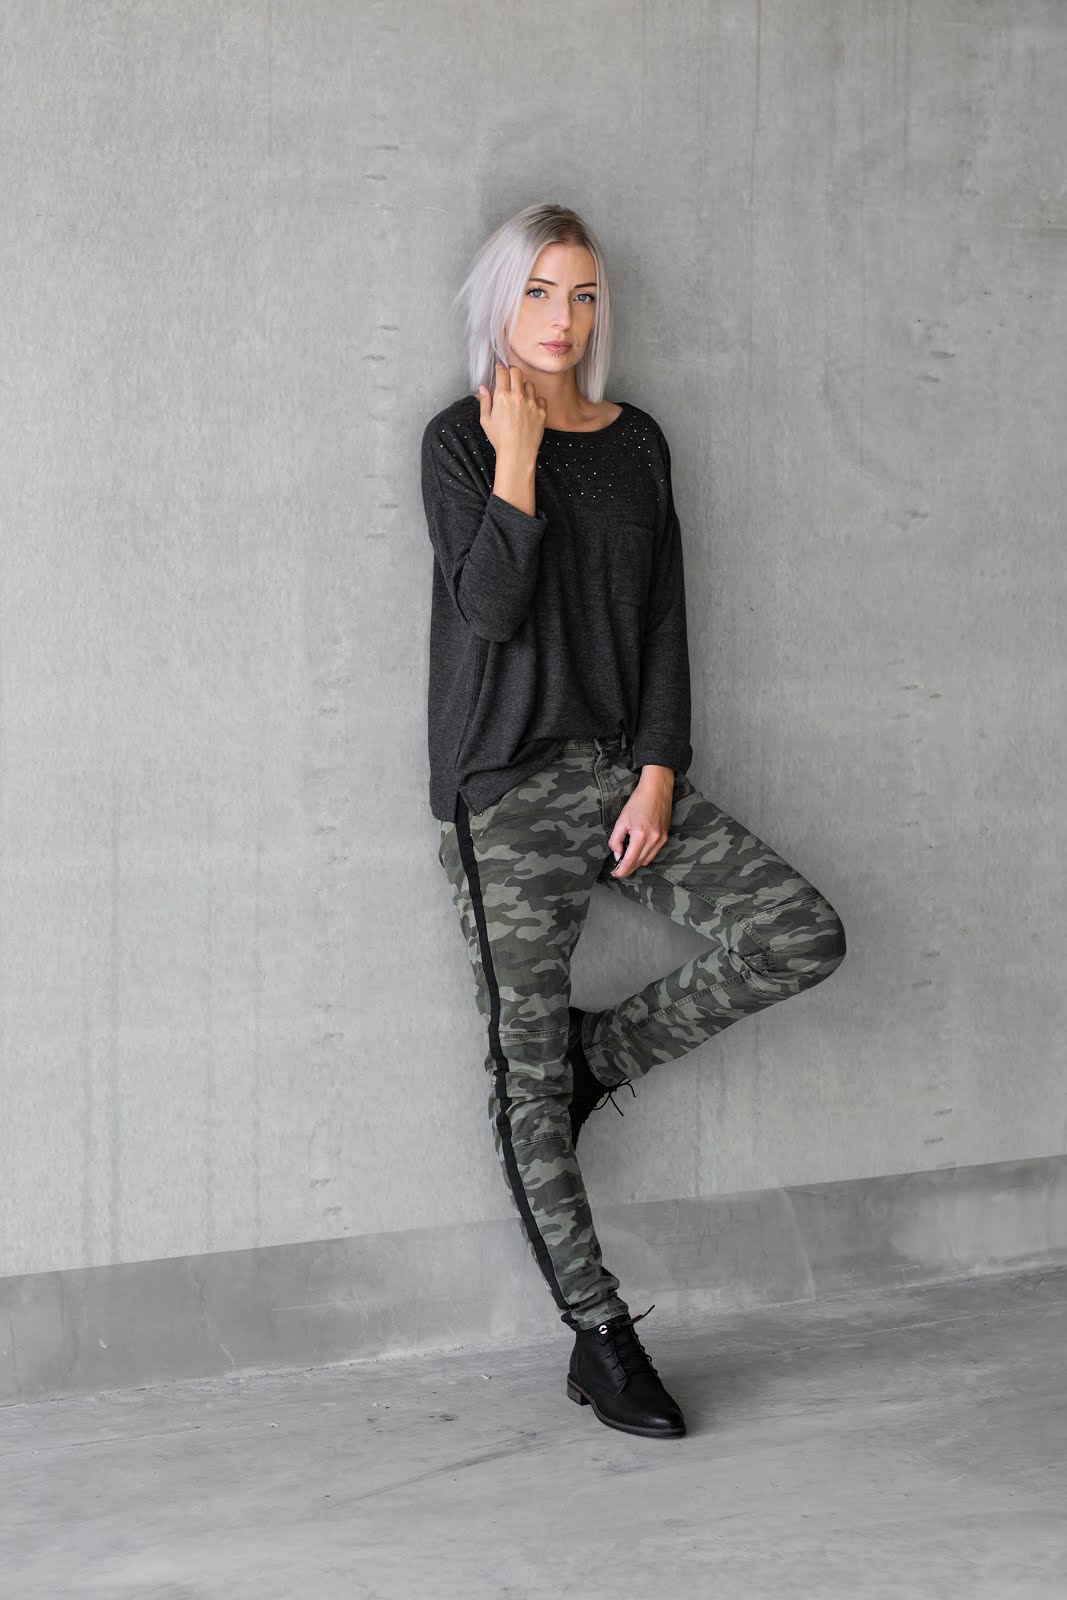 S.Oliver, camo, camouflage trousers, army, outfit, minimal, combat boots, fashion, trend 2018 fall winter